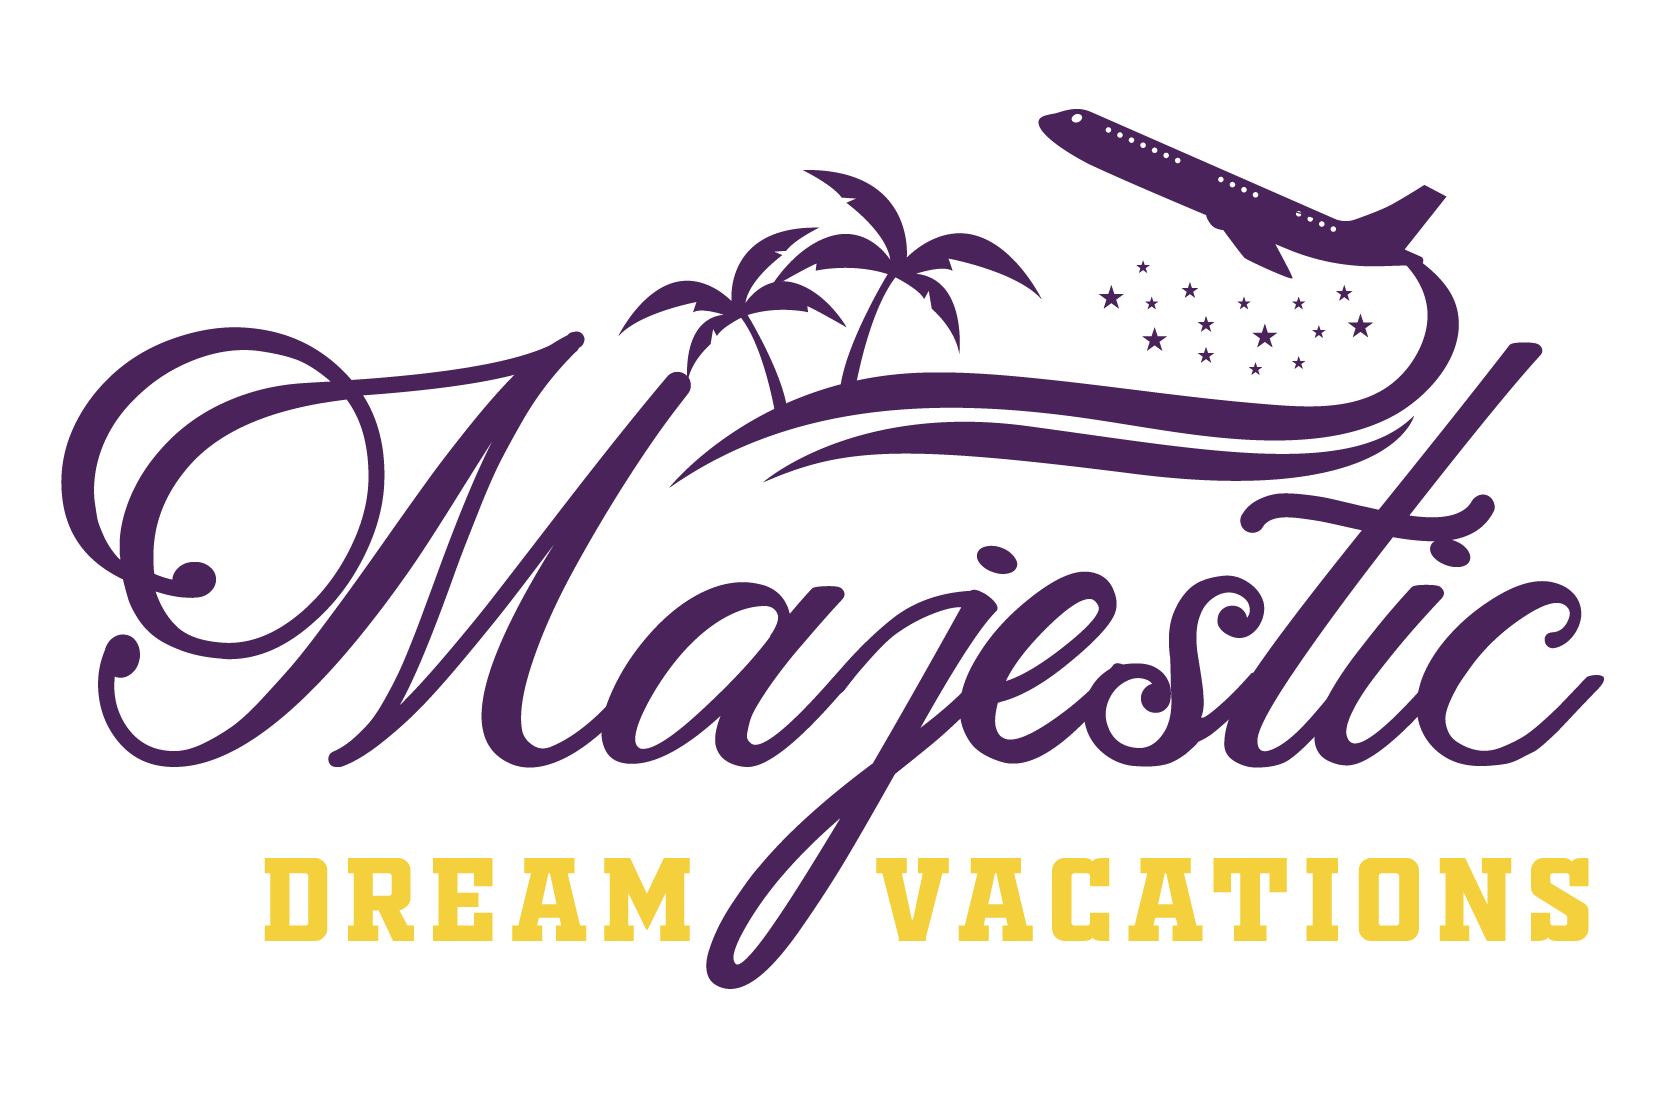 Majestic Dream Vacations